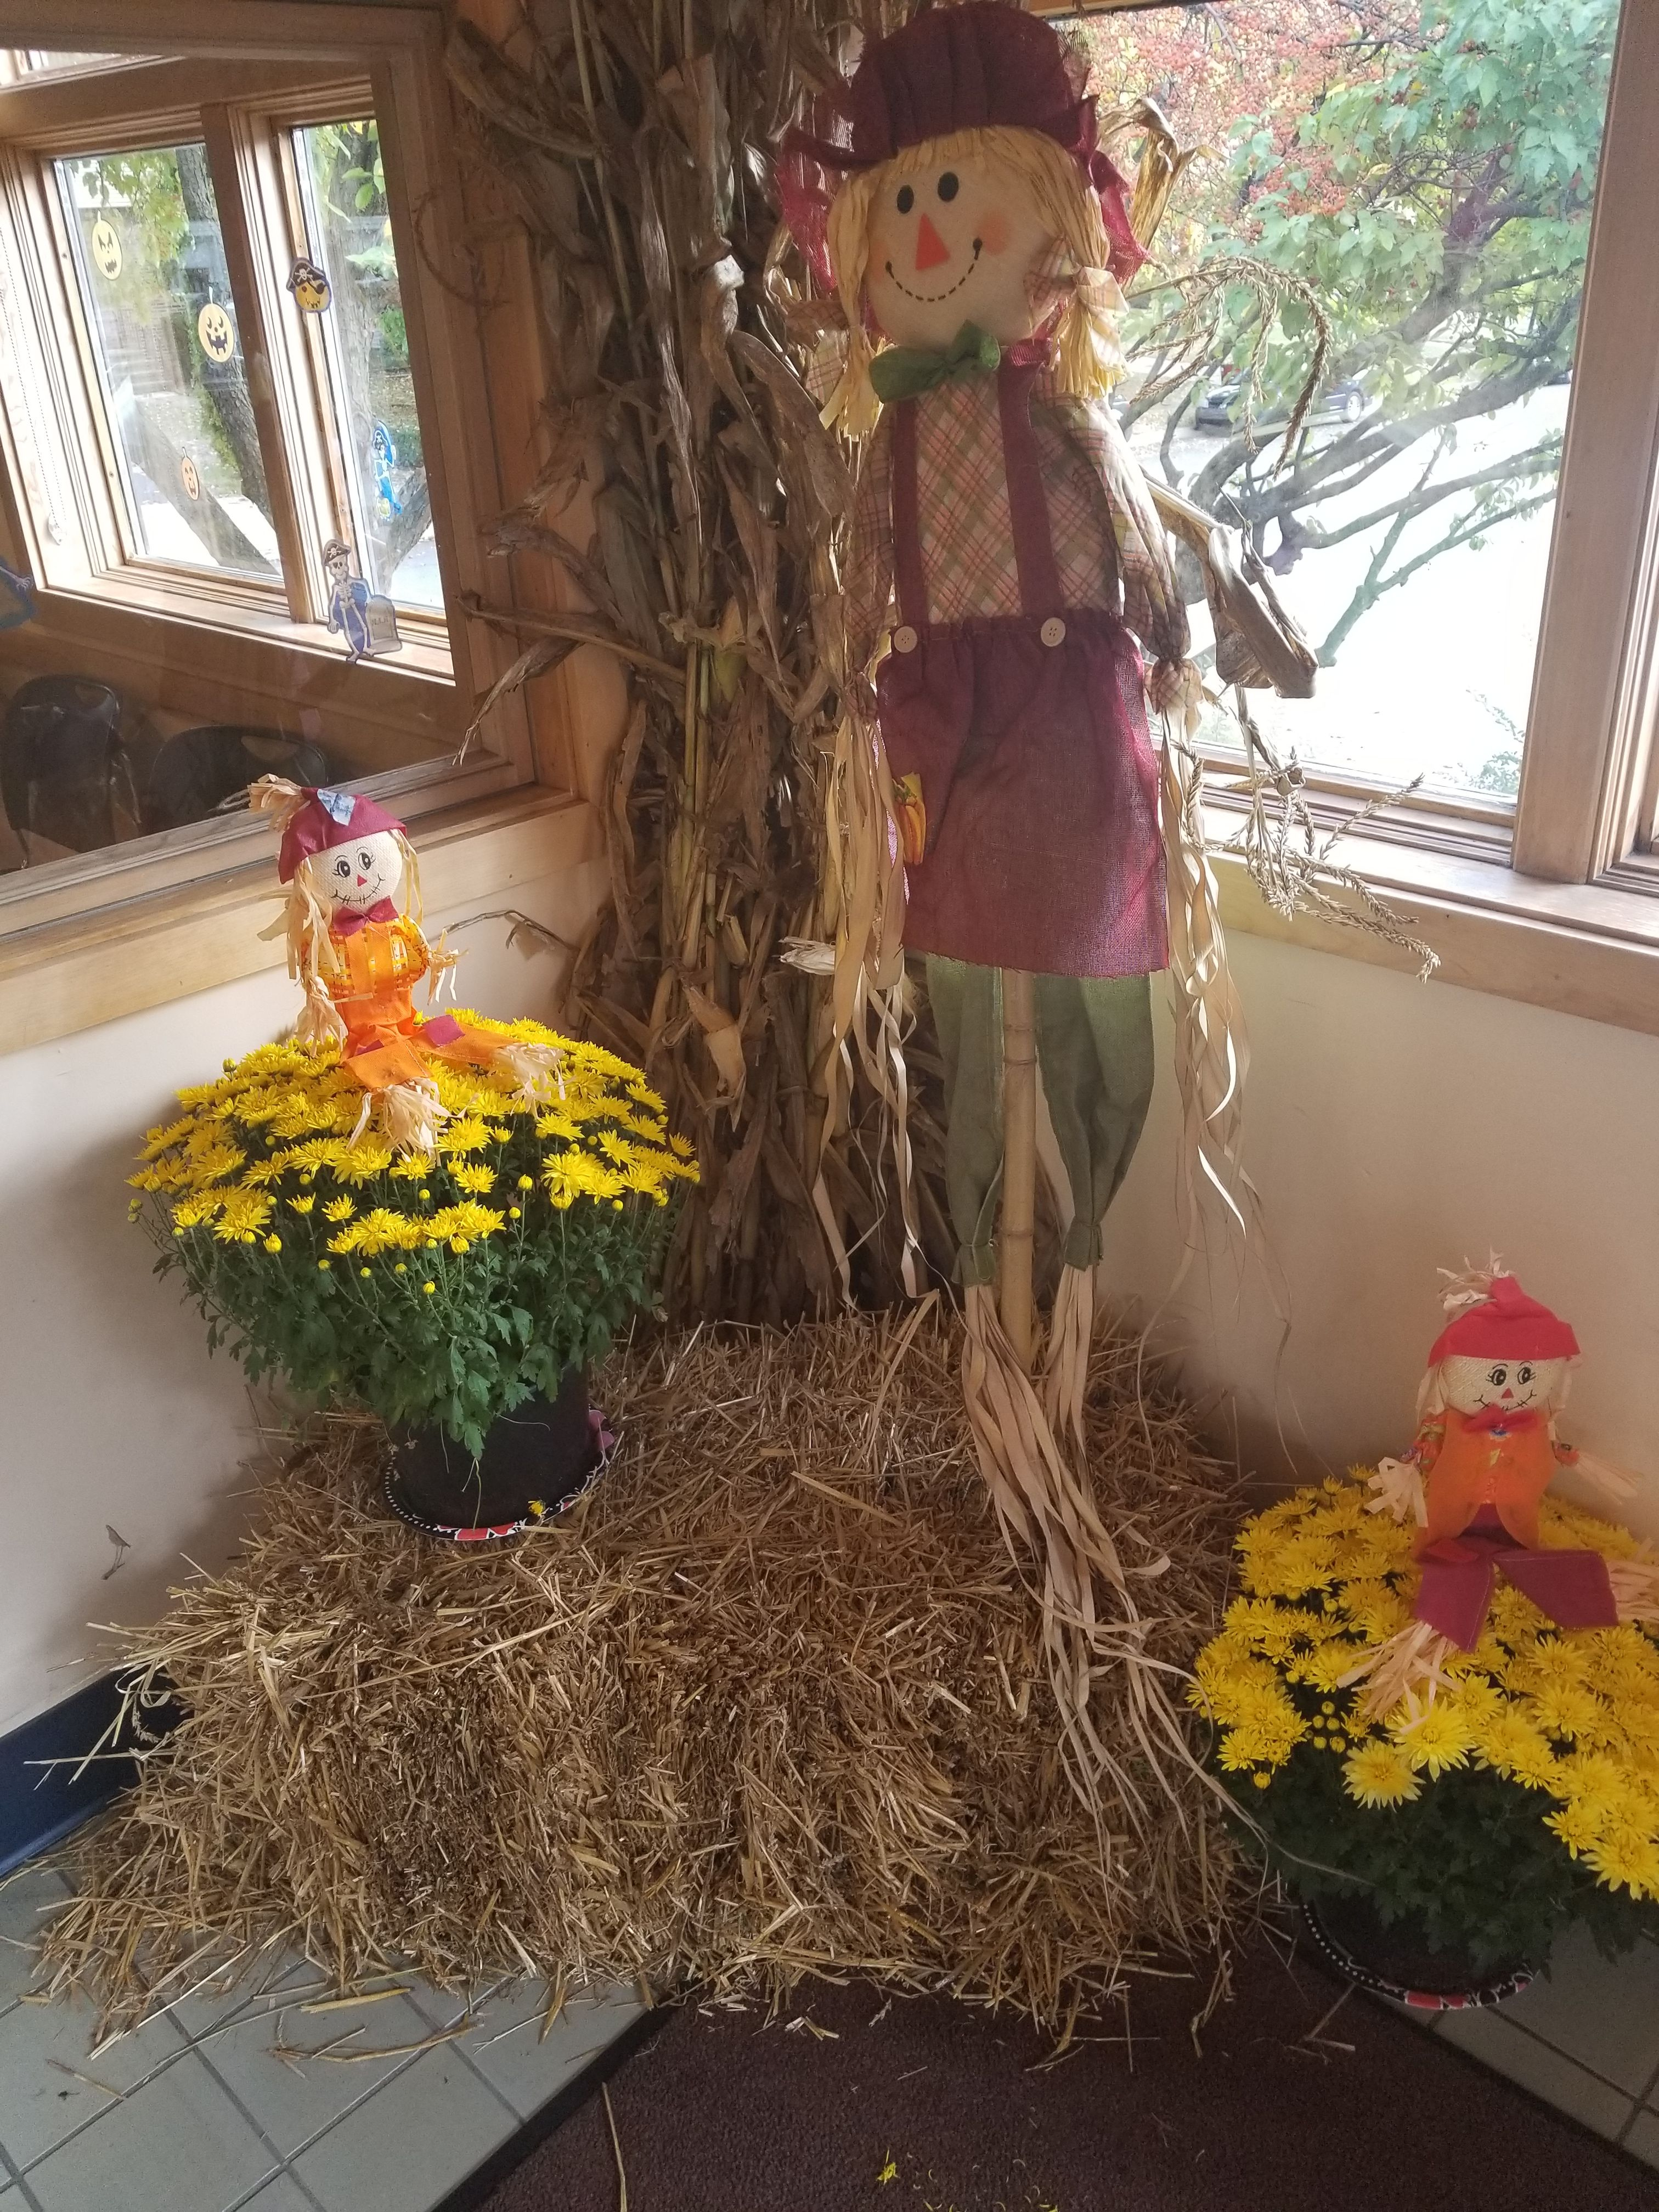 Happy fall from our team at Pediatric Associates of